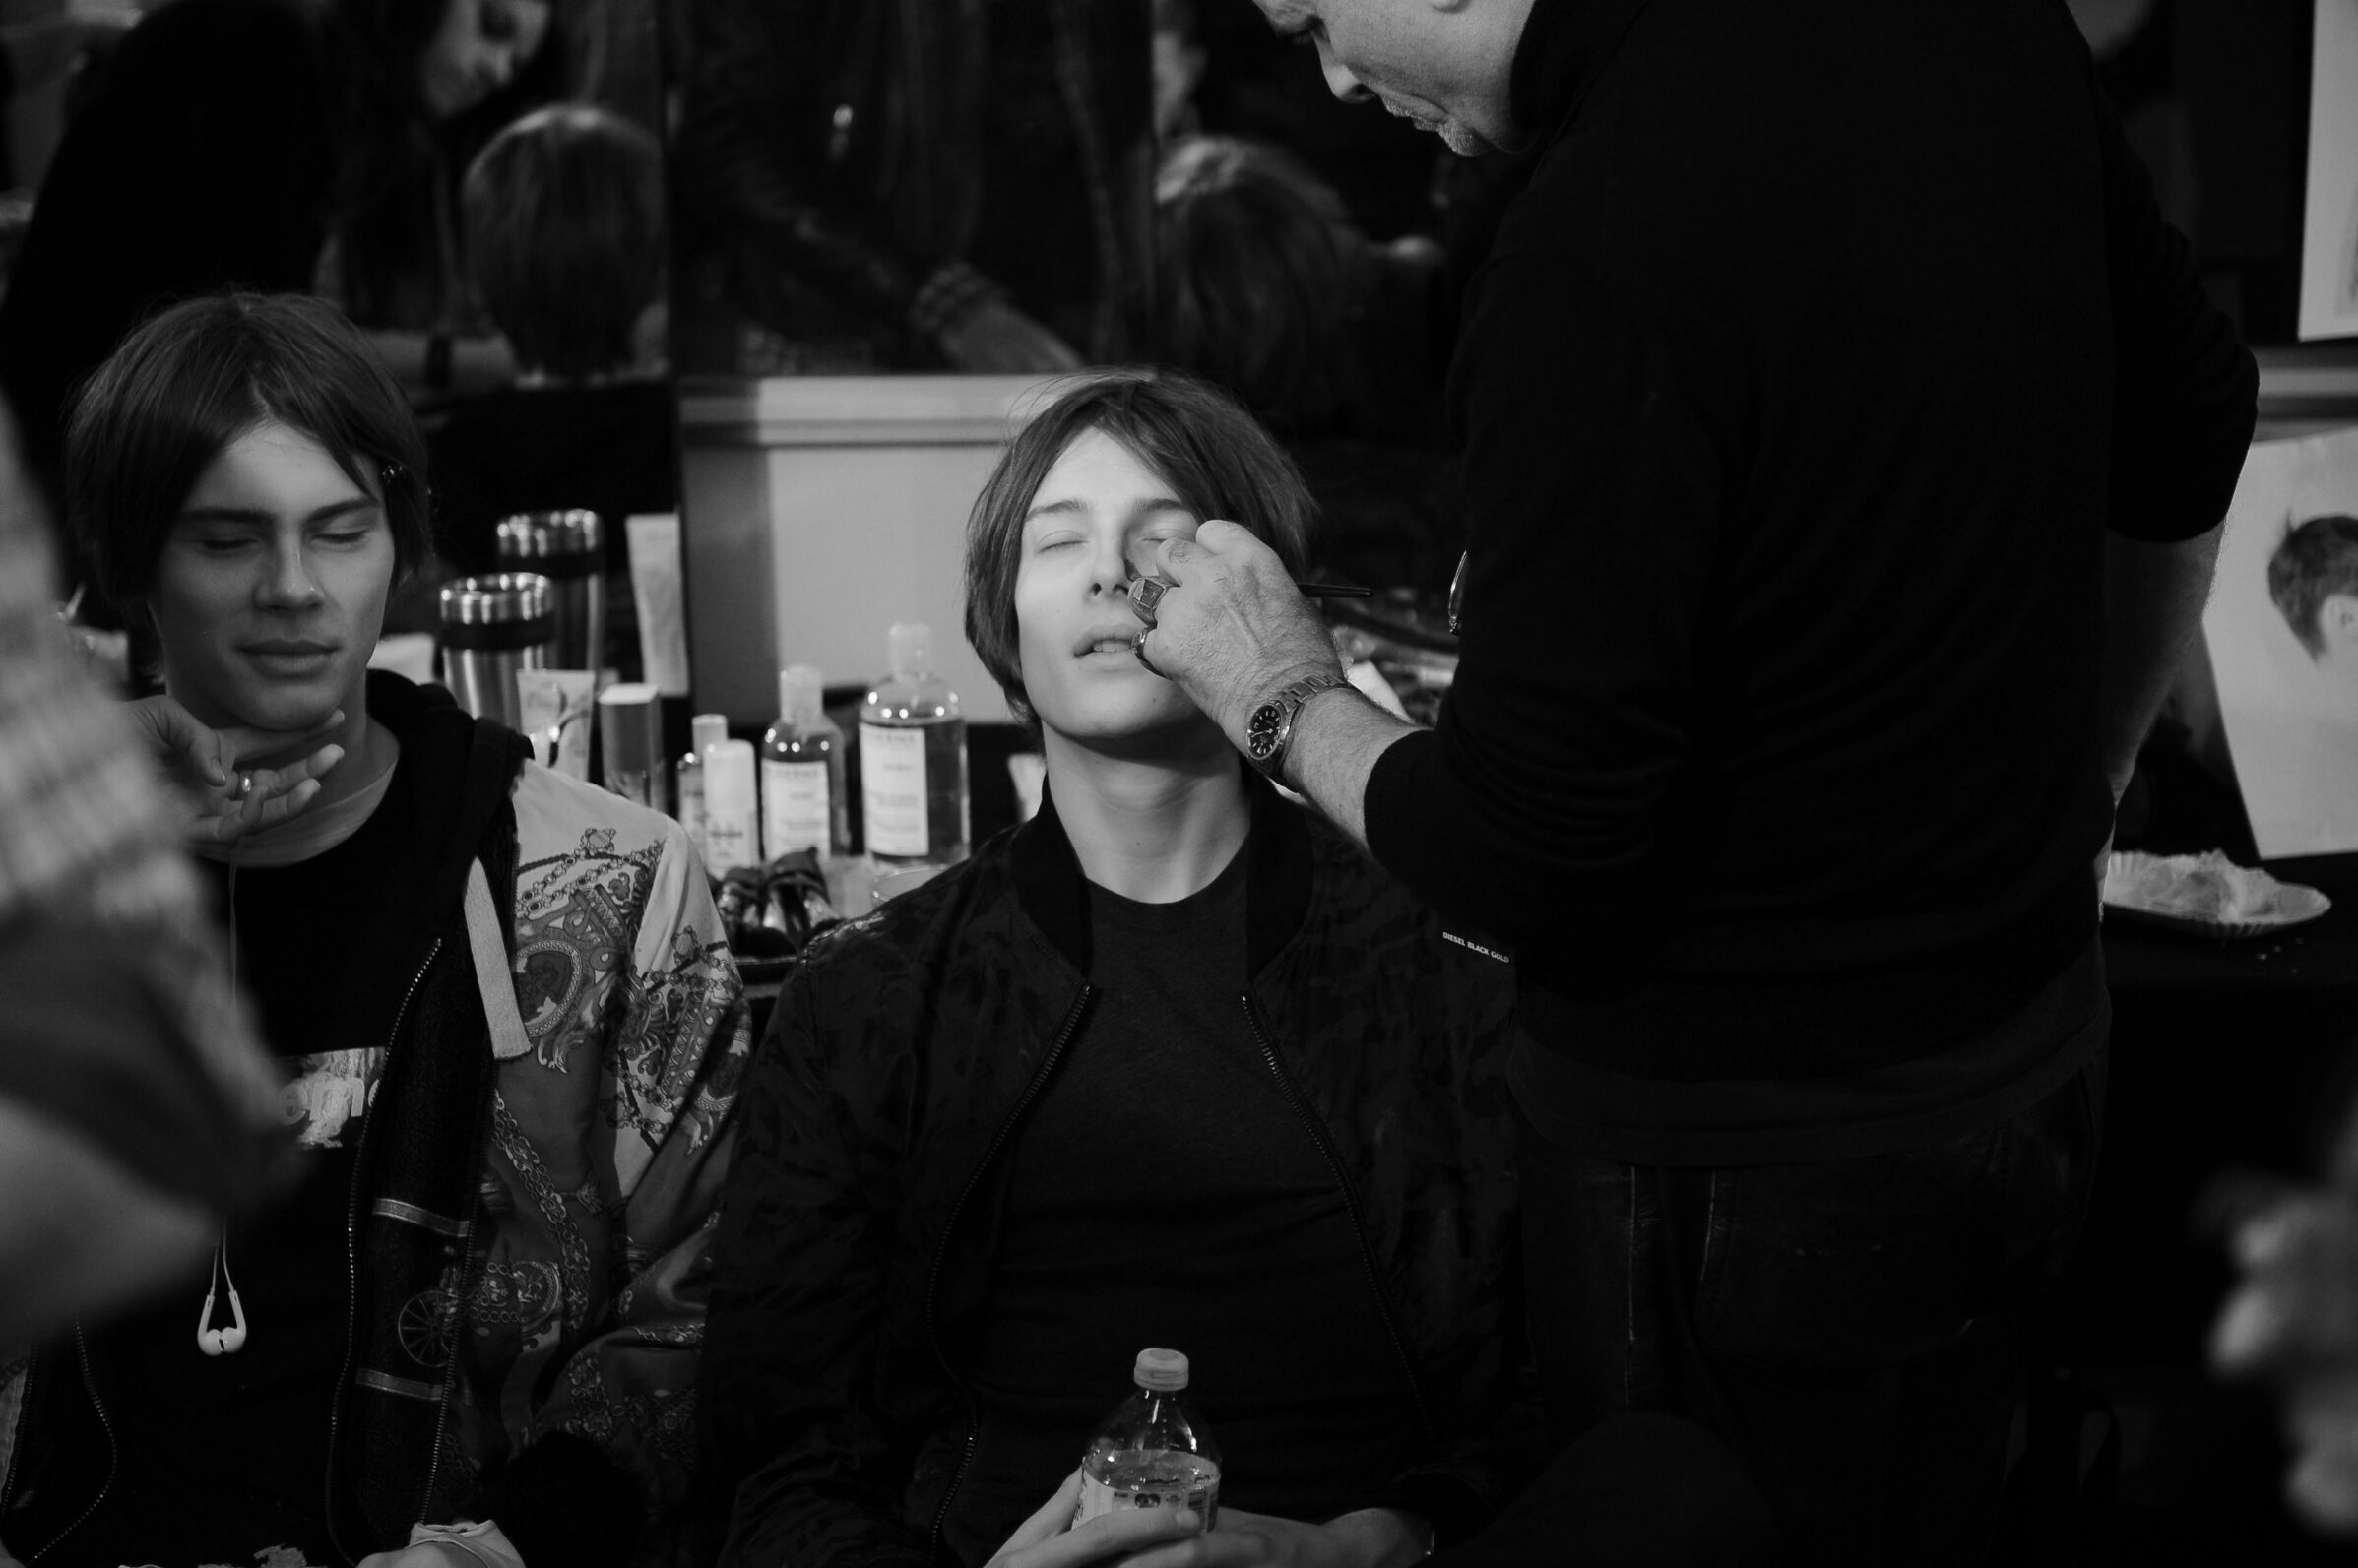 Backstage Diesel Black Gold Fashion Show Make Up